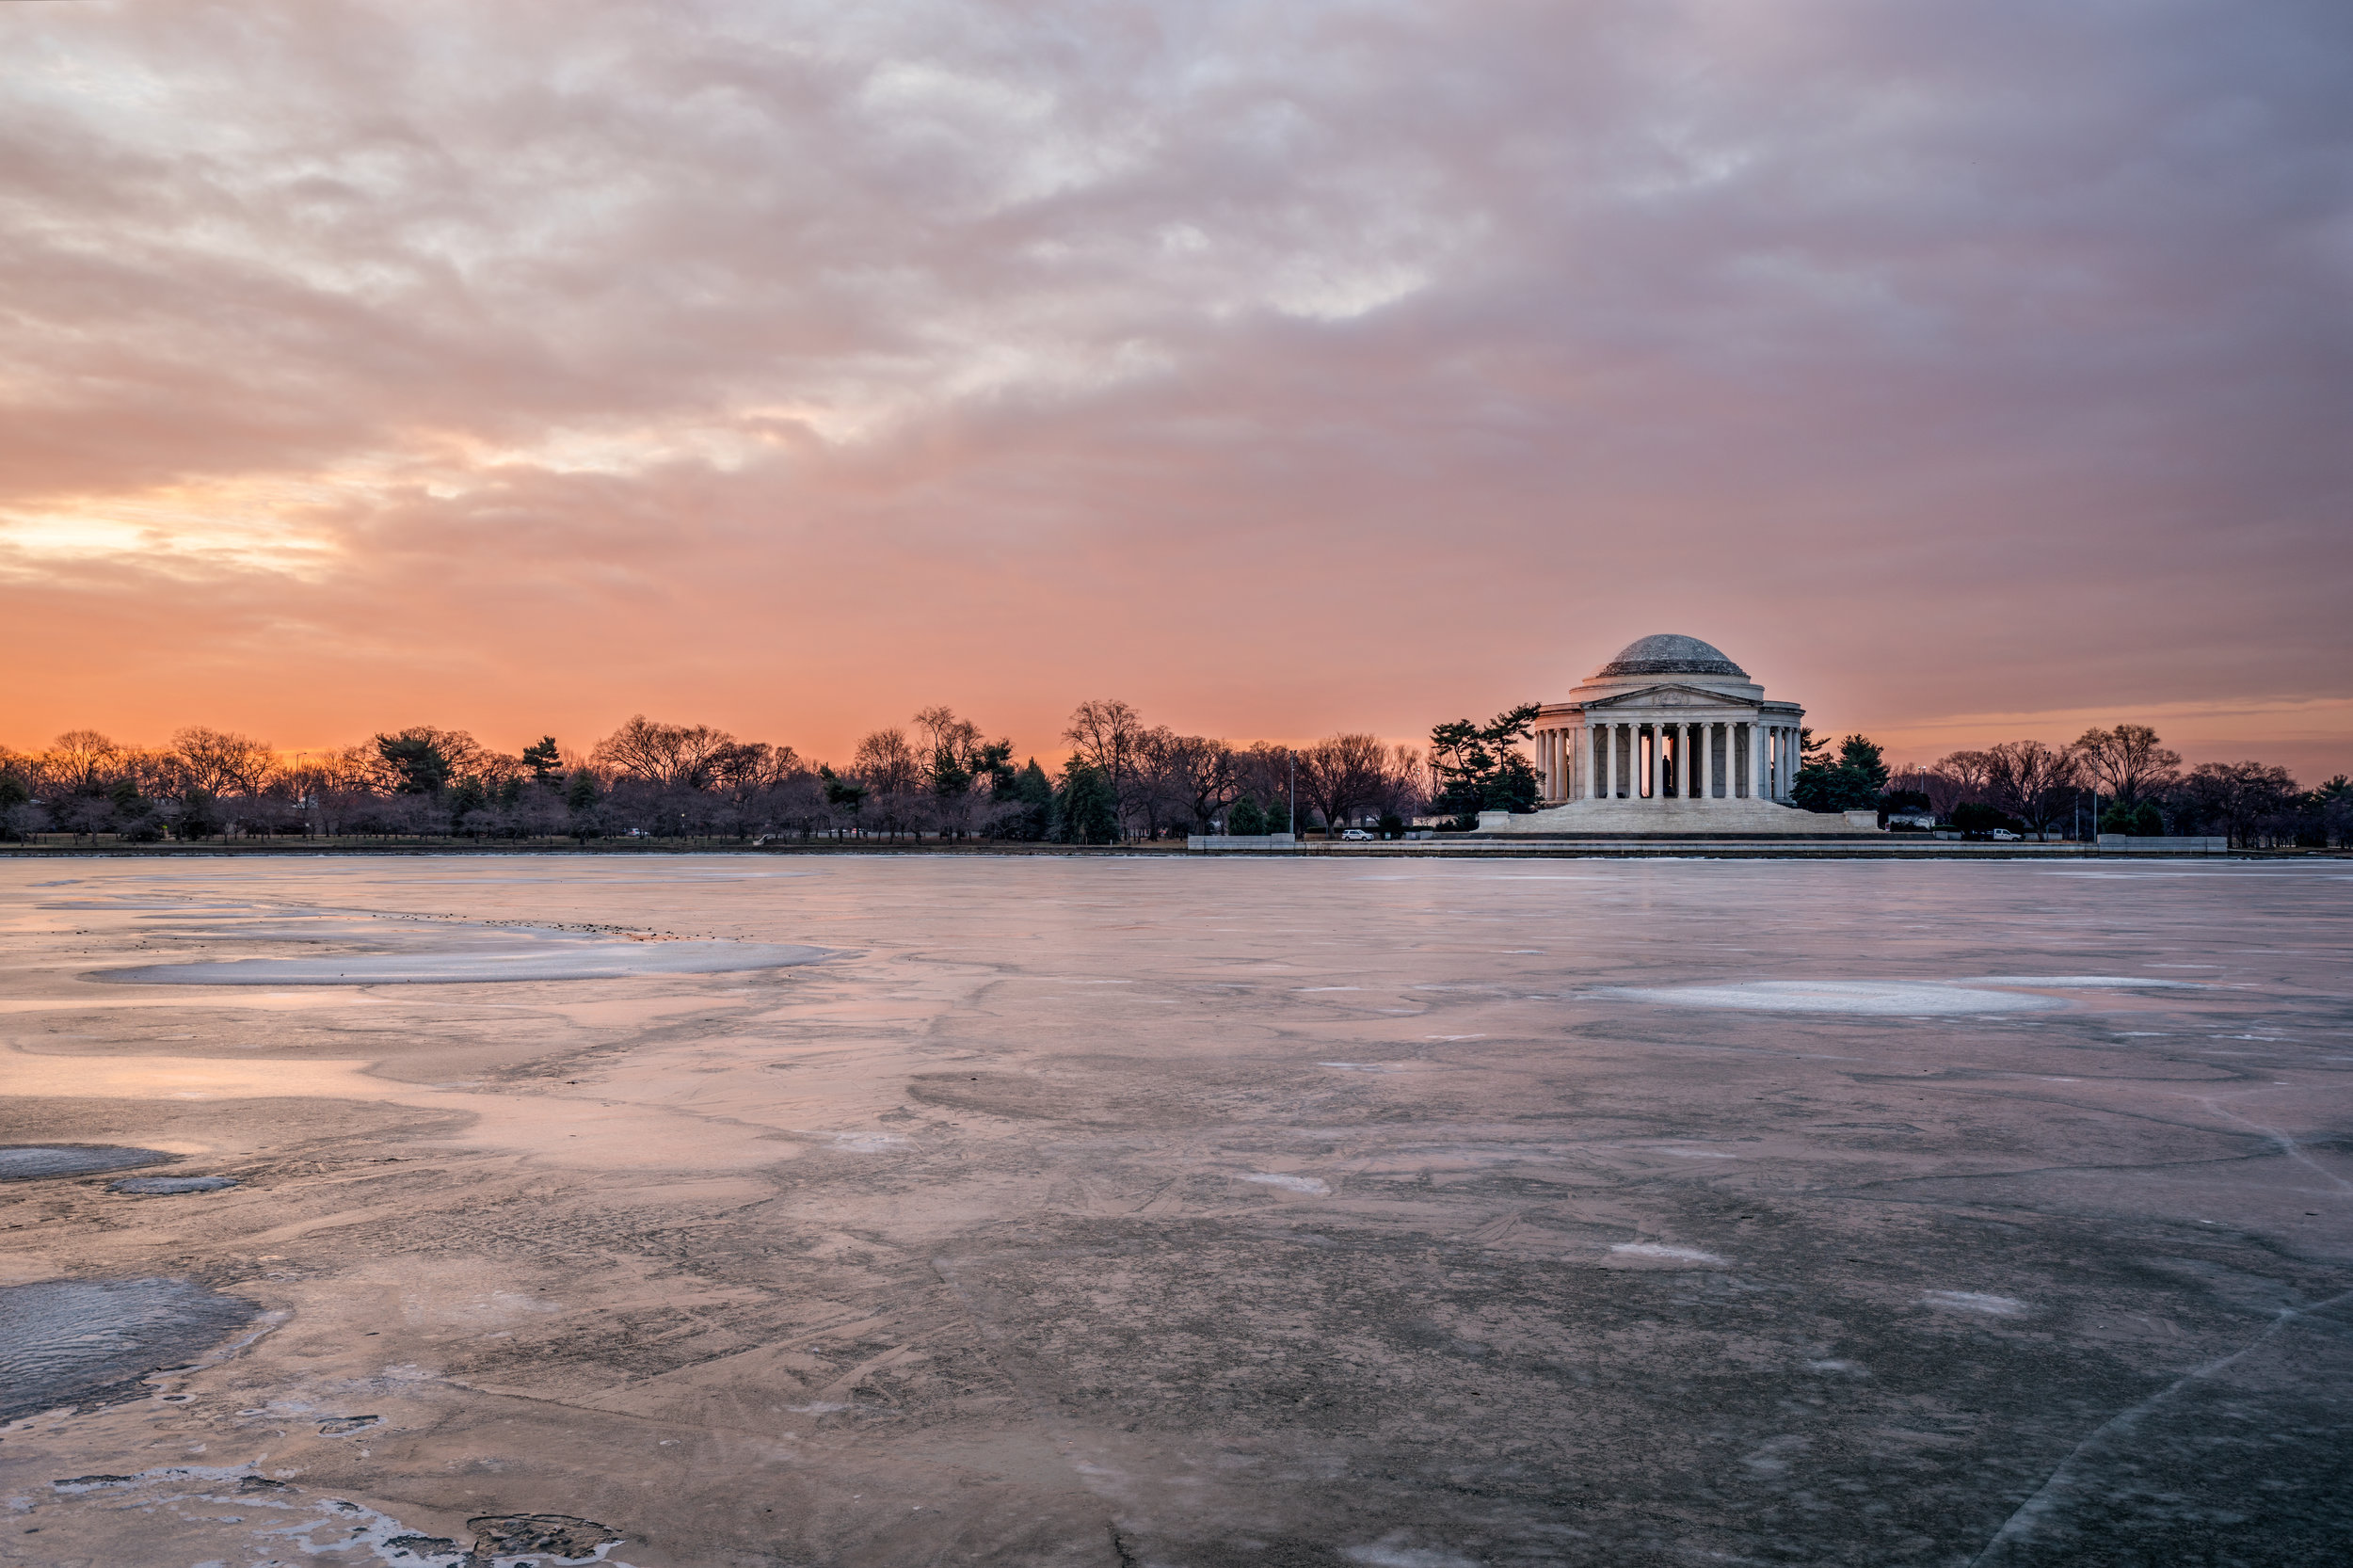 Early January 2018 freeze of the Tidal Basin with some amazing color in the sky. ---- Sony A7R2 --- 5:31am -- Sony 16-35/35mm - 1/200, F/5.6, ISO 100, tripod.